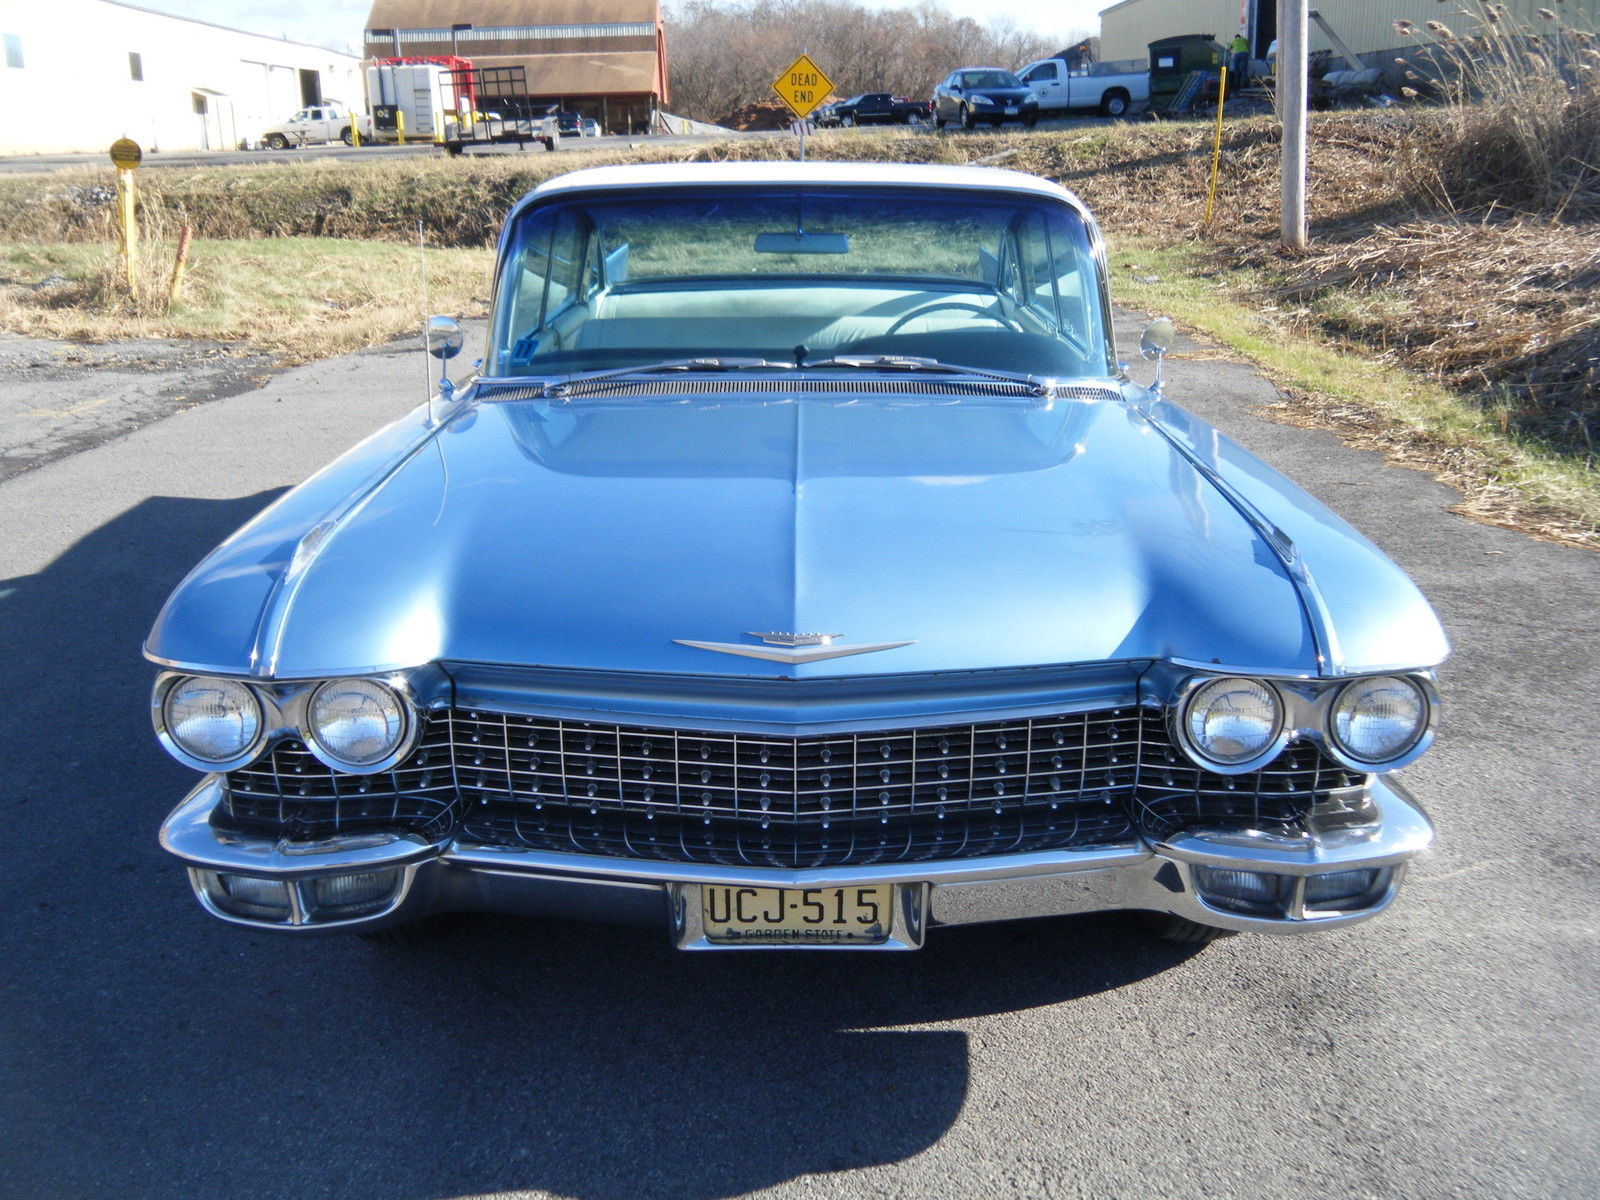 1960 Cadillac Fleetwood Rare Special Order 19511959 Listed 1951 Sedan Oldsmobile Also